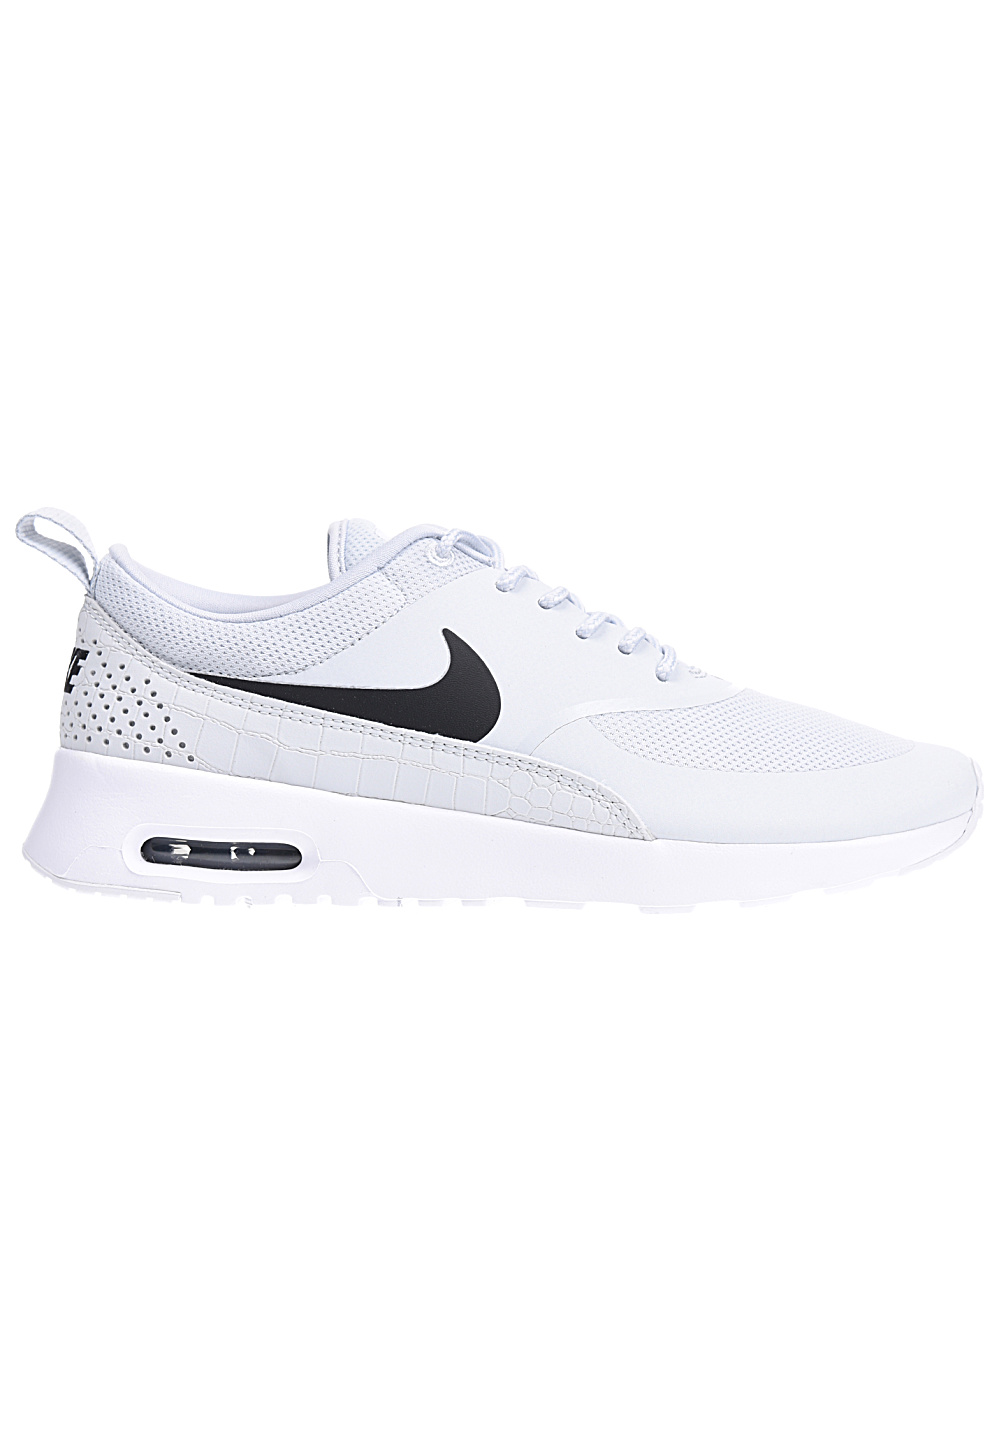 NIKE SPORTSWEAR Air Max Thea - Sneakers for Women - White - Planet ... 1944ceb72183